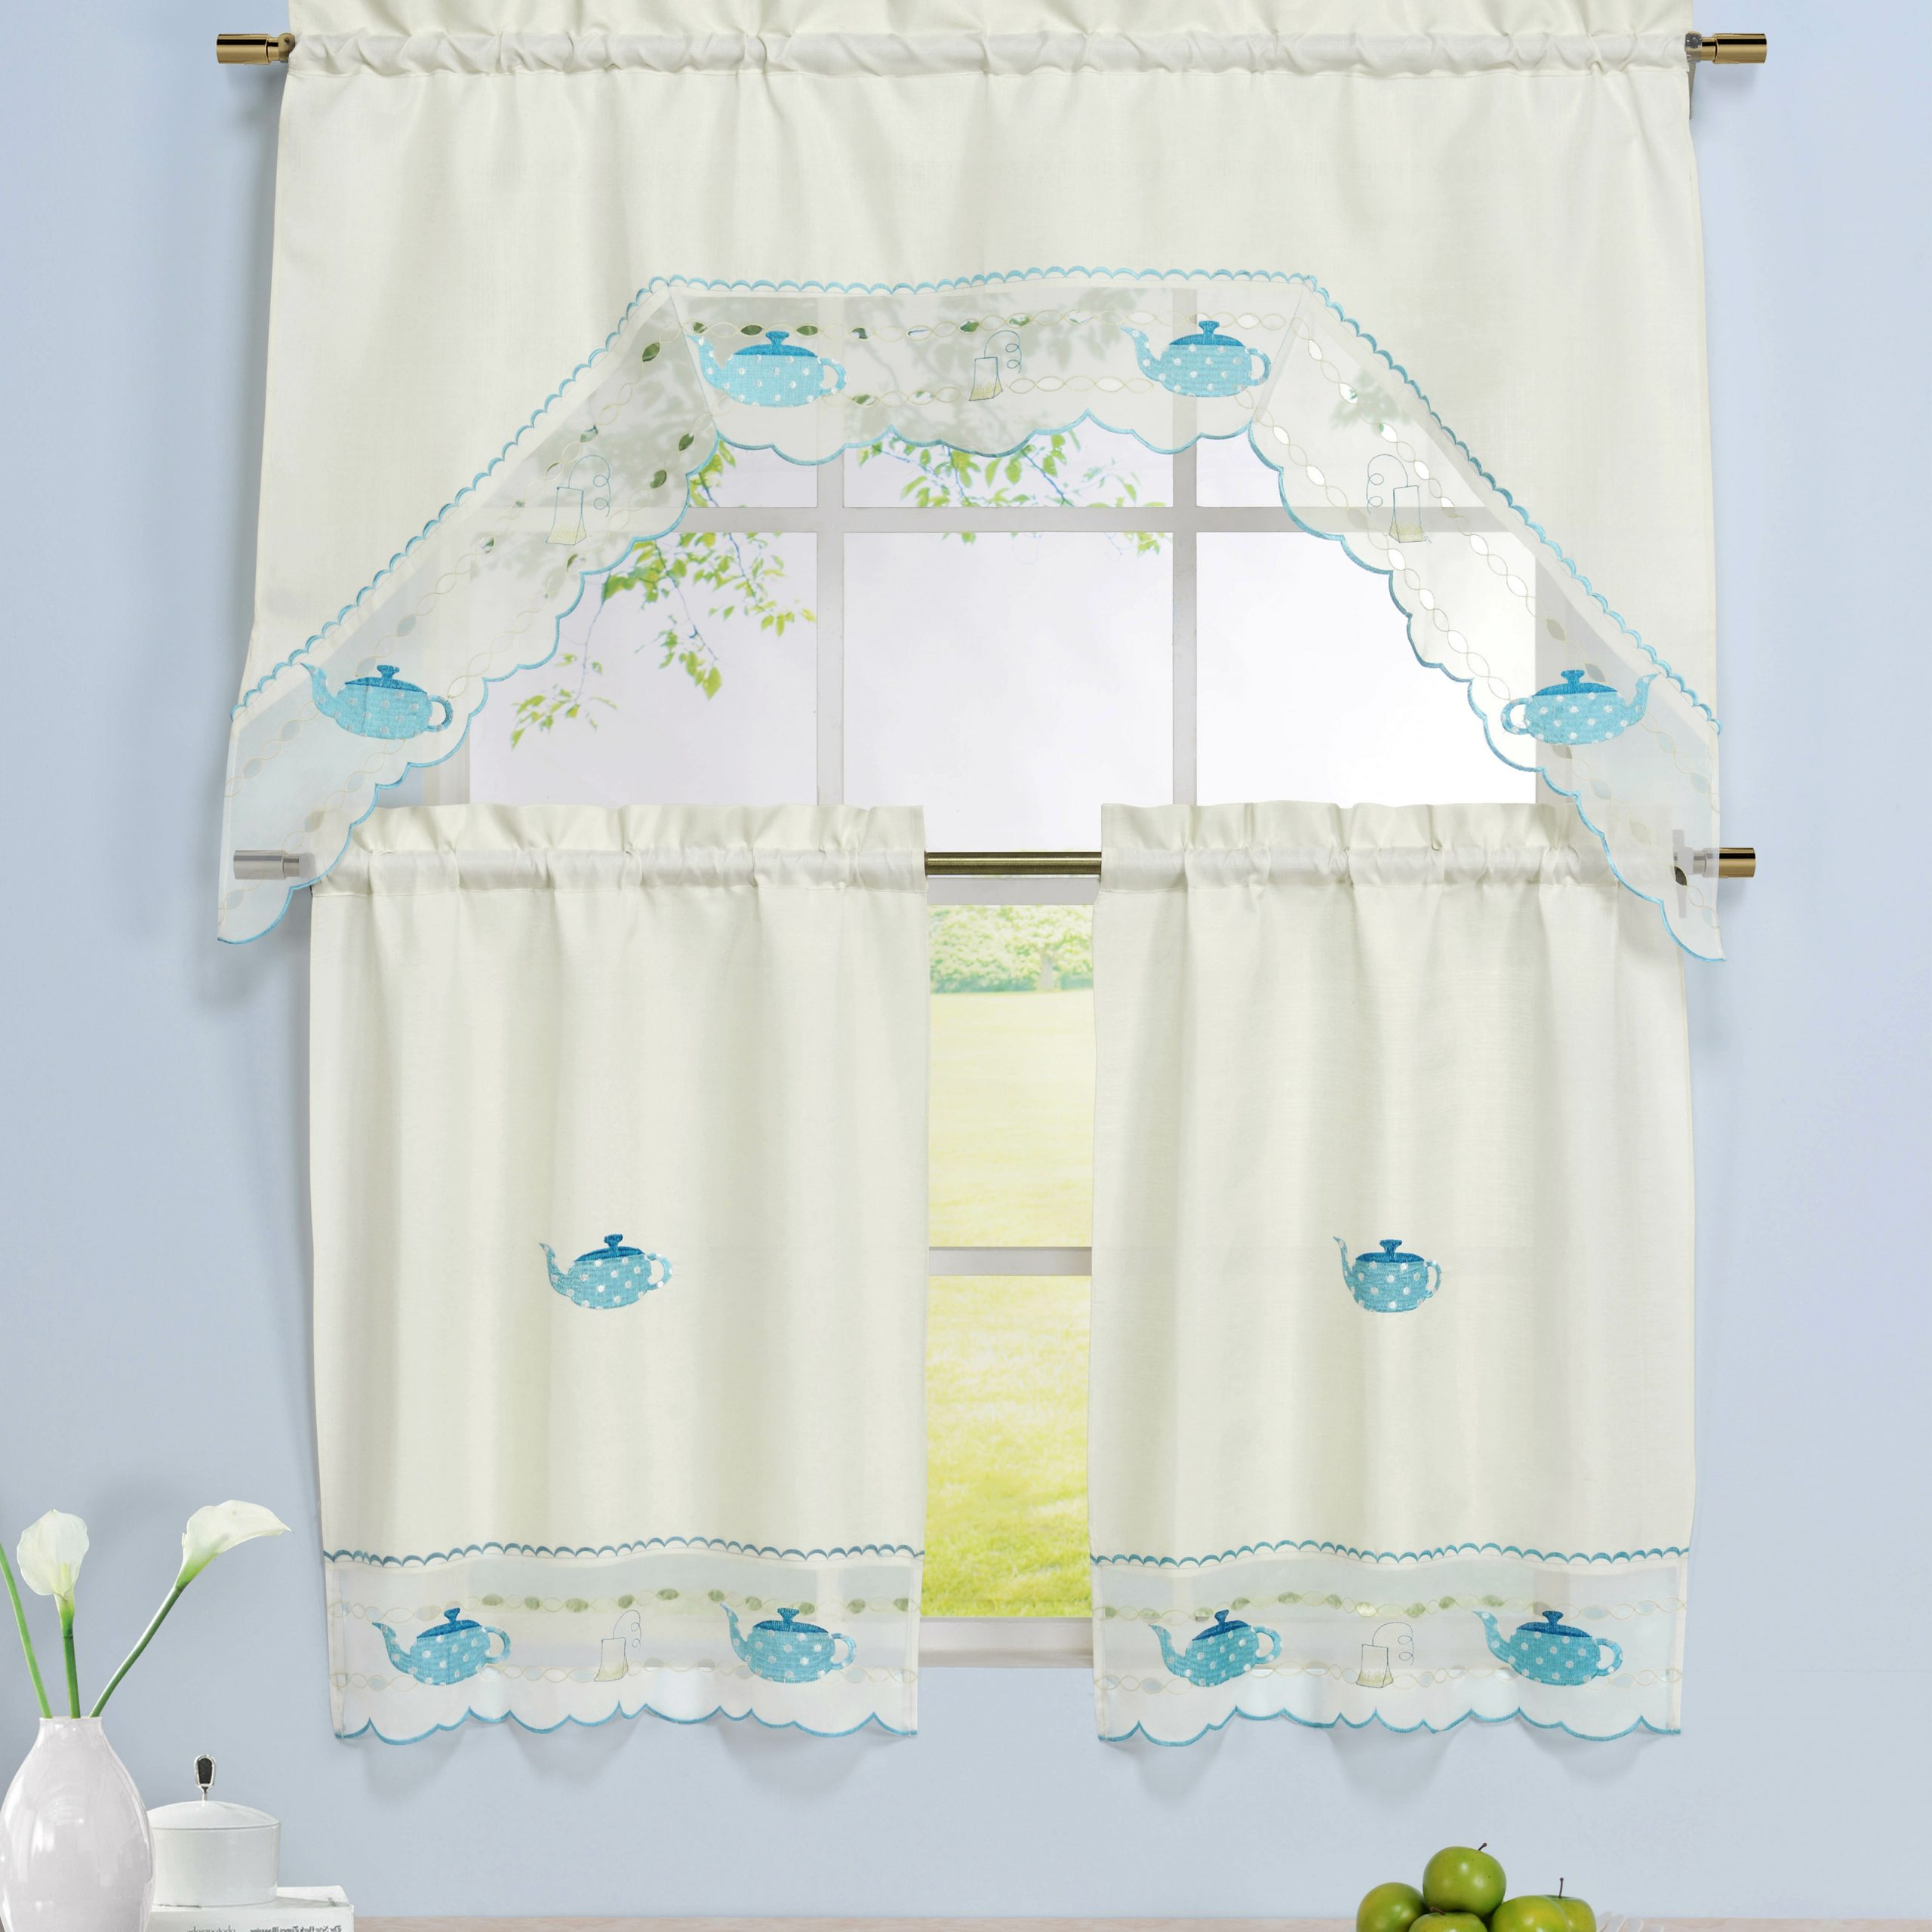 Popular Tea Party 3 Piece Embroidered Kitchen Valance And Tier Set With Regard To Traditional Two Piece Tailored Tier And Swag Window Curtains Sets With Ornate Rooster Print (View 10 of 20)